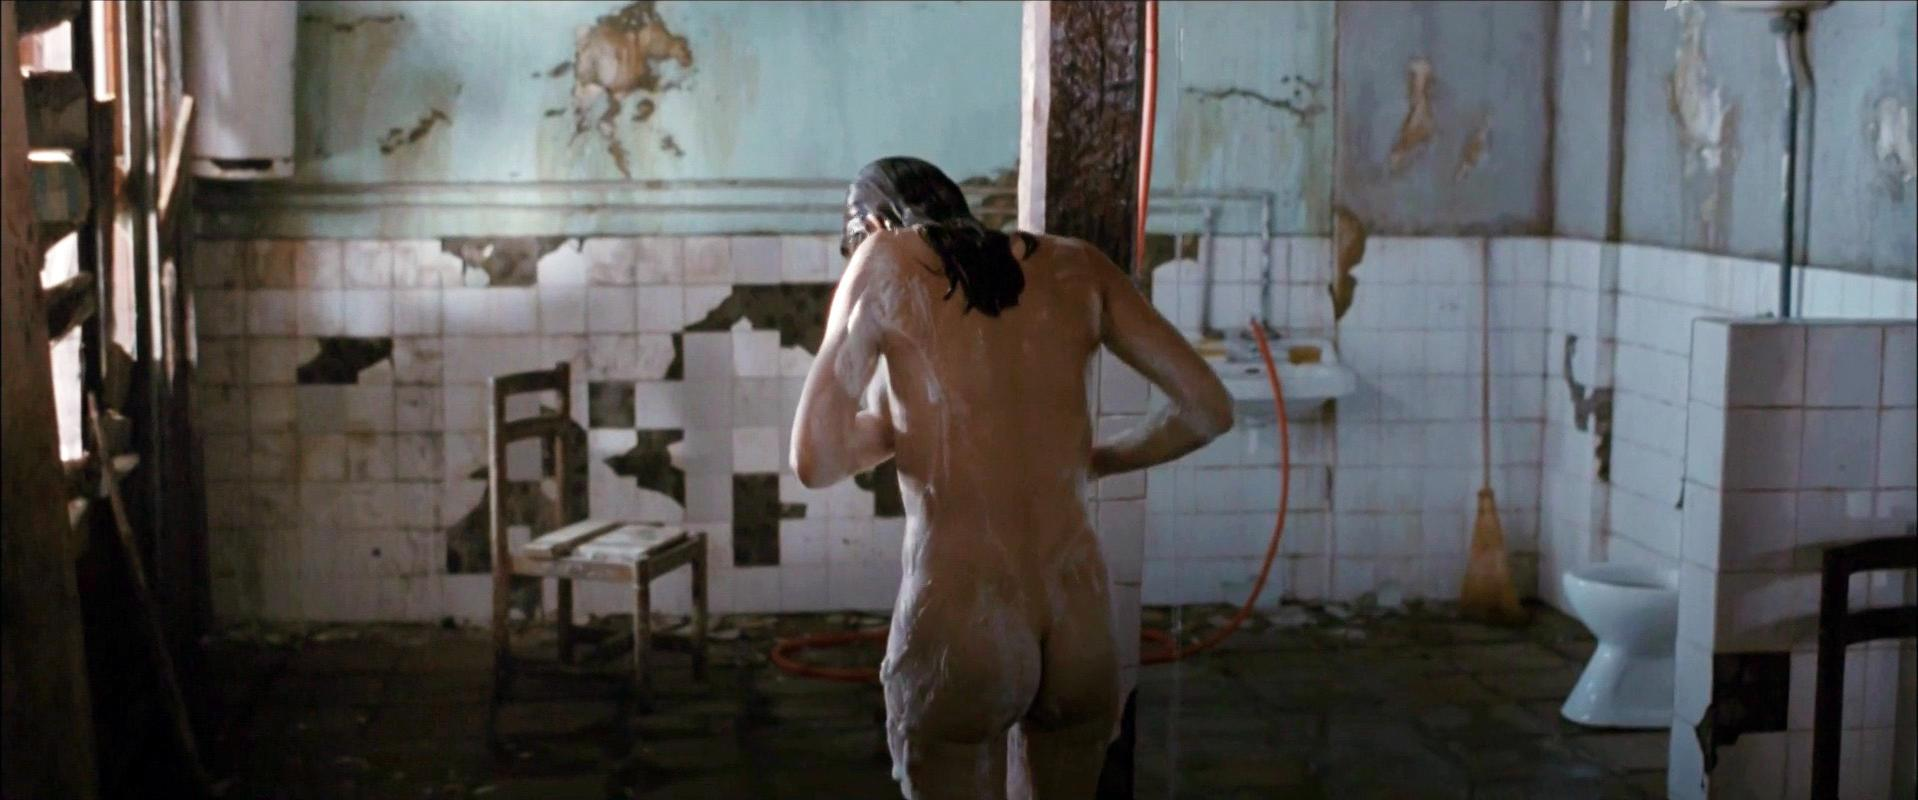 Laetitia Casta nude - The Island (2011)